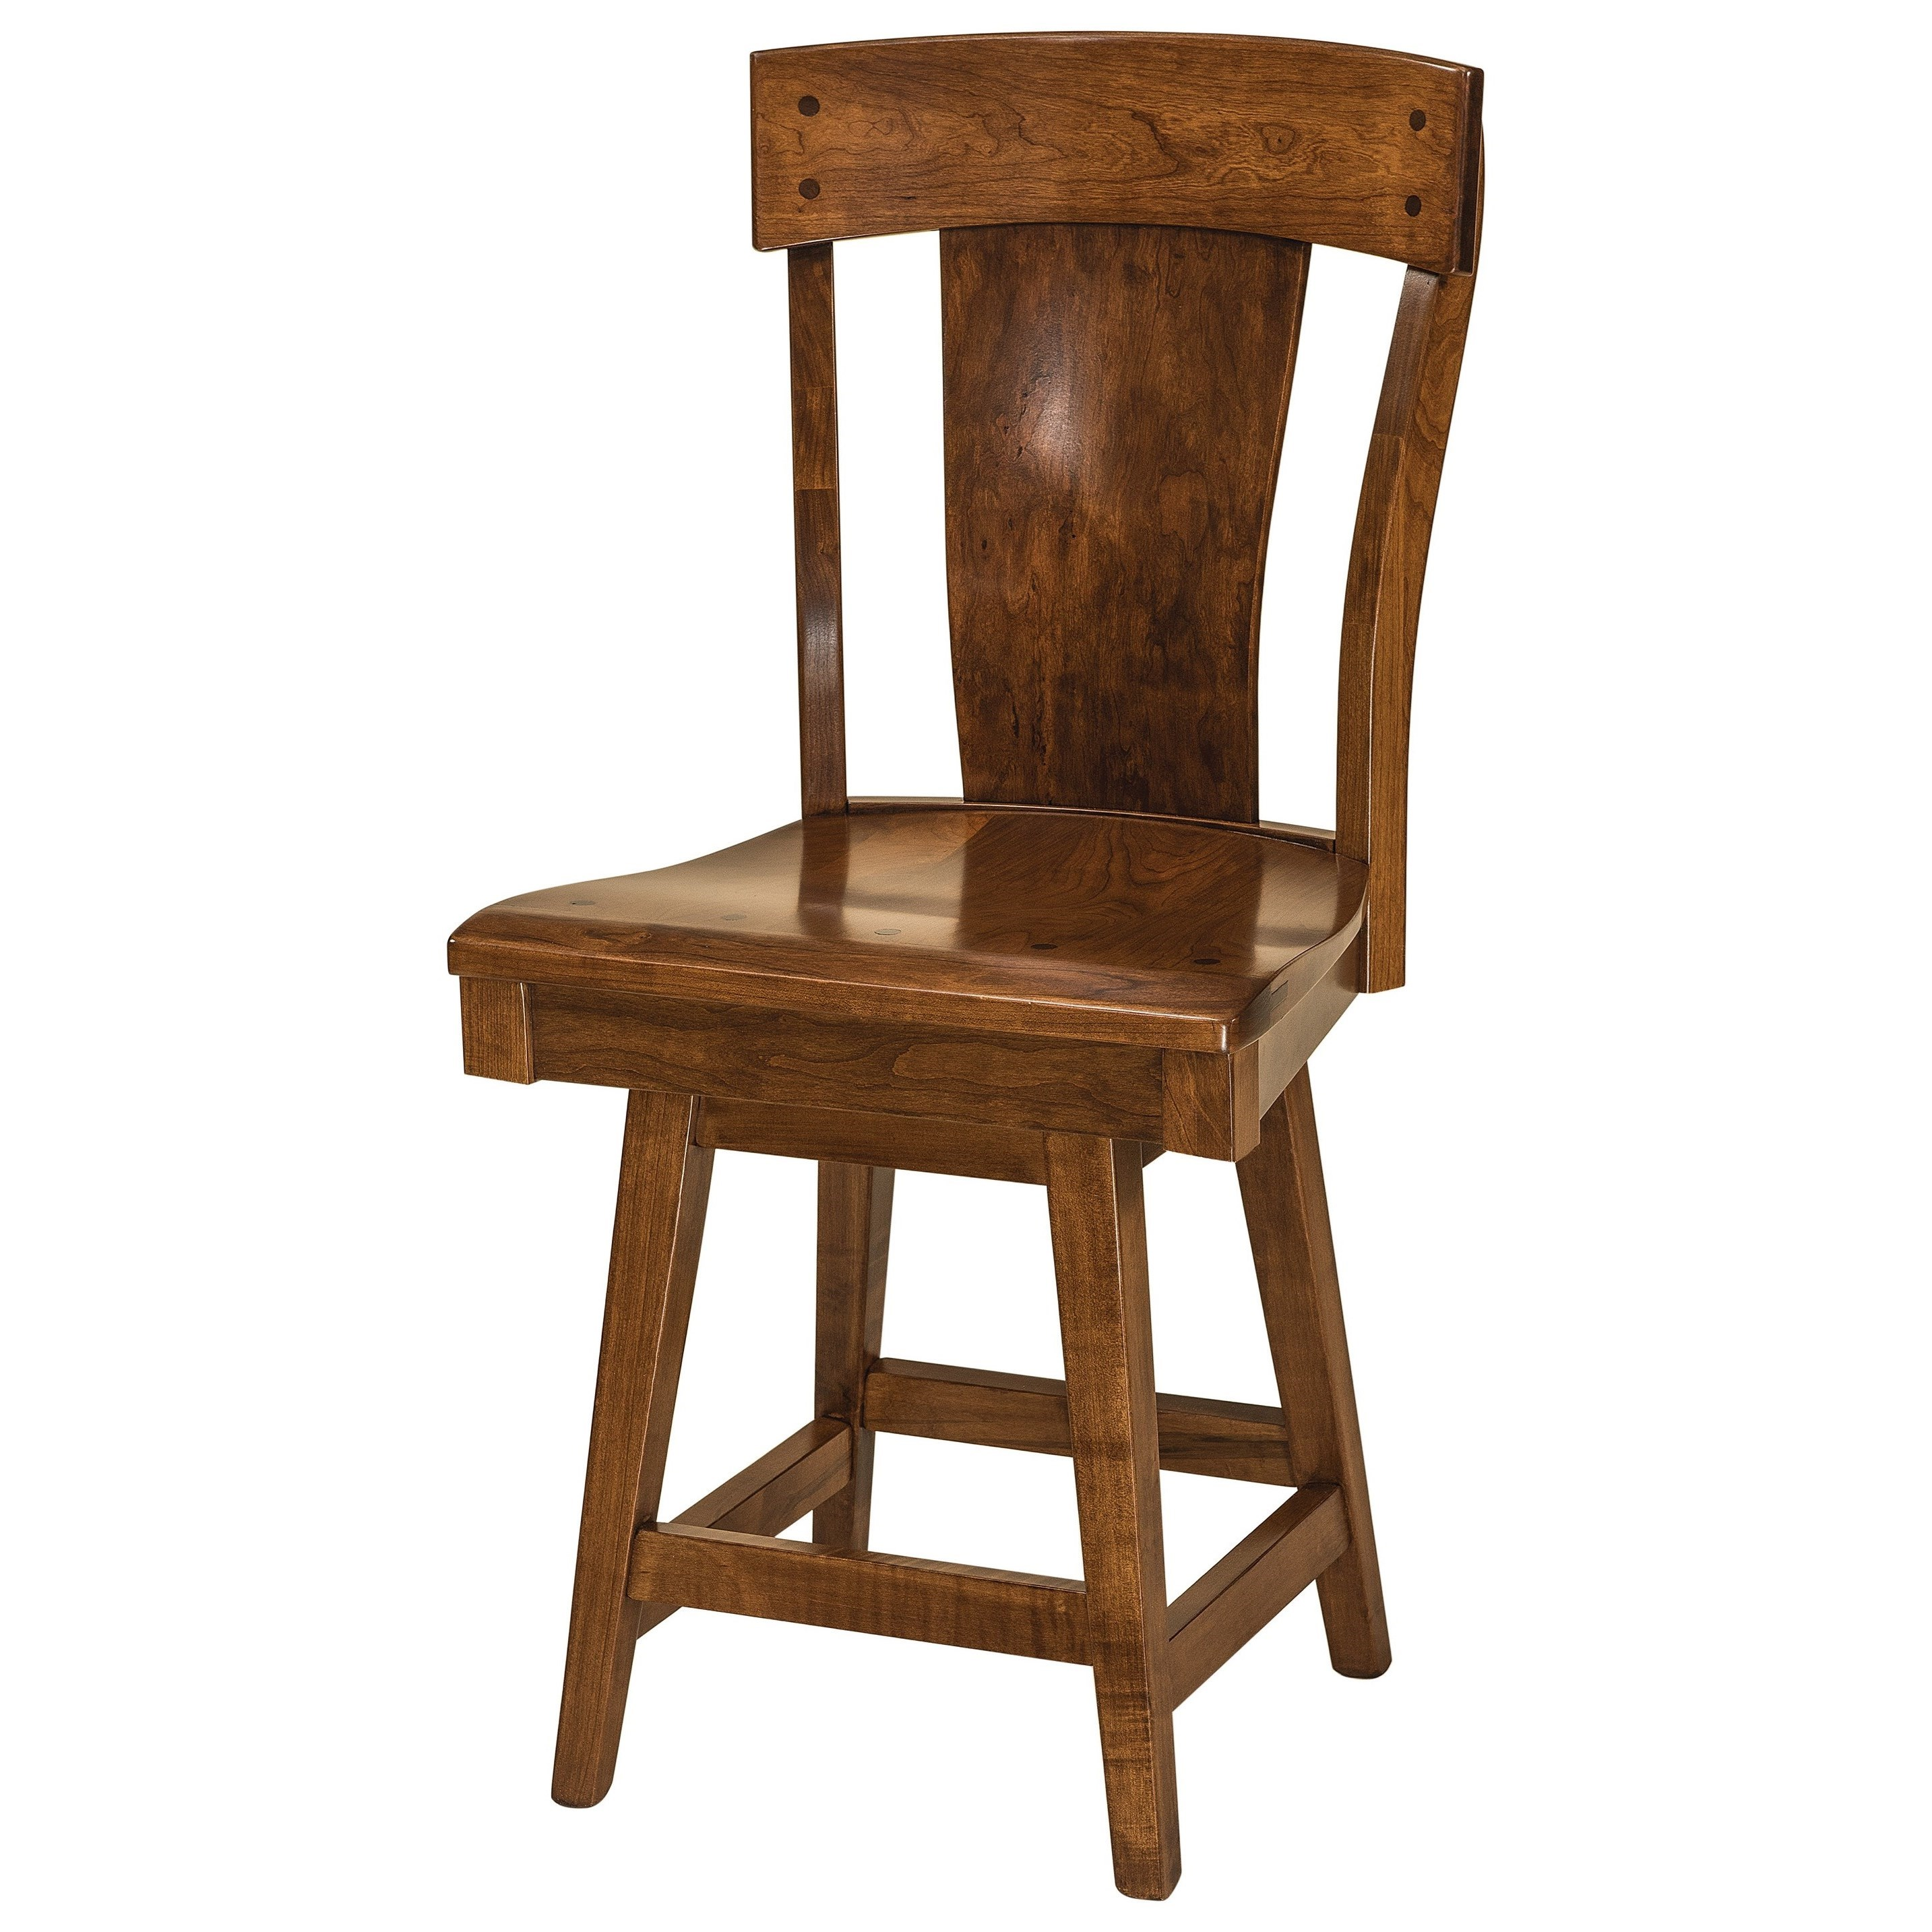 Lacombe Swivel Bar Height Stool - Wood Seat by F&N Woodworking at Mueller Furniture